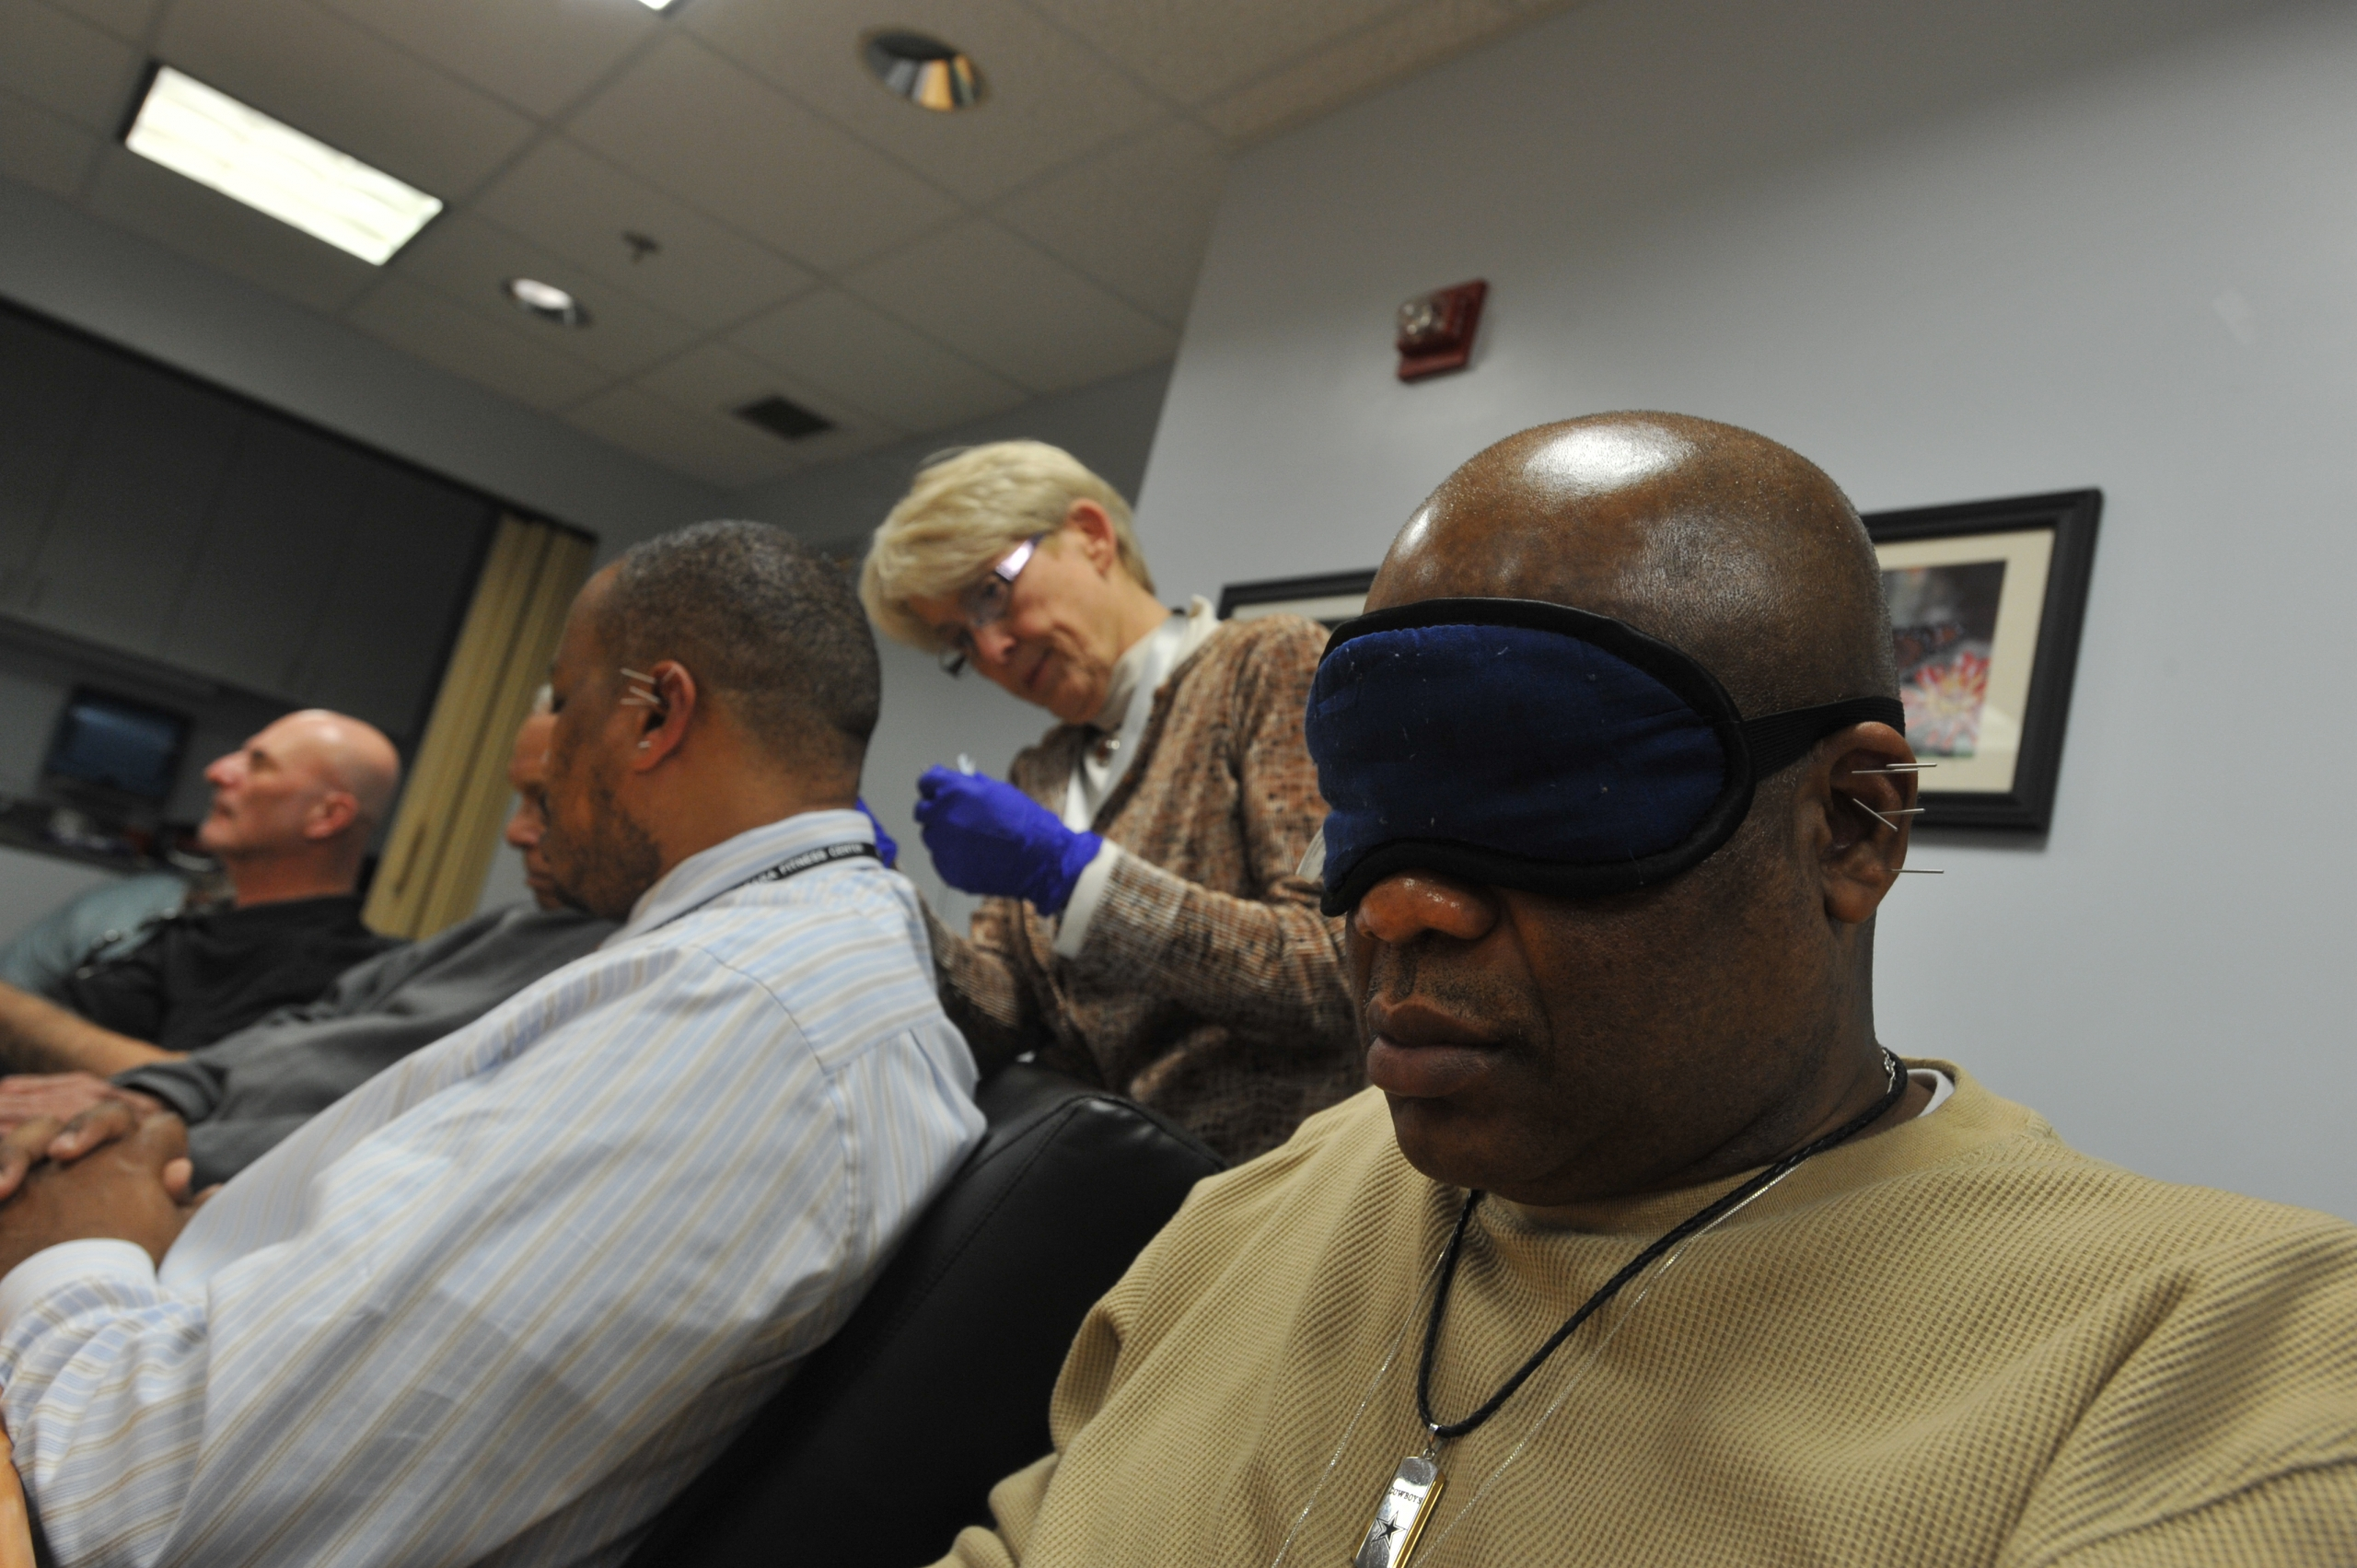 Veterans receive battlefield acupuncture treatment at the Washington DC VA Medical Center. An eye mask and soothing music in the background help create a relaxing environment.